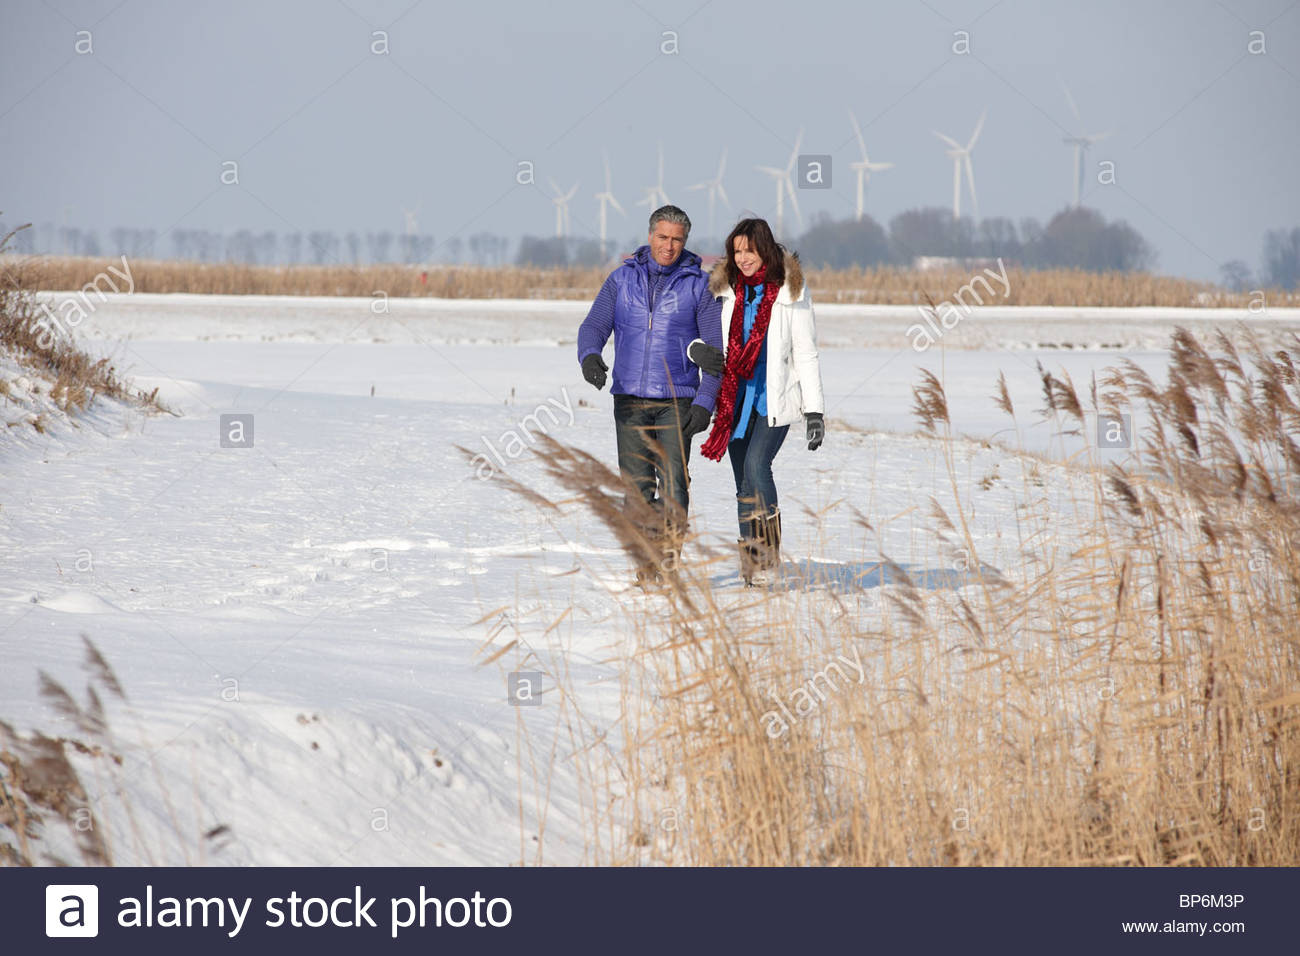 Mature couple walking through snow in Flevoland, The Netherlands - Stock Image